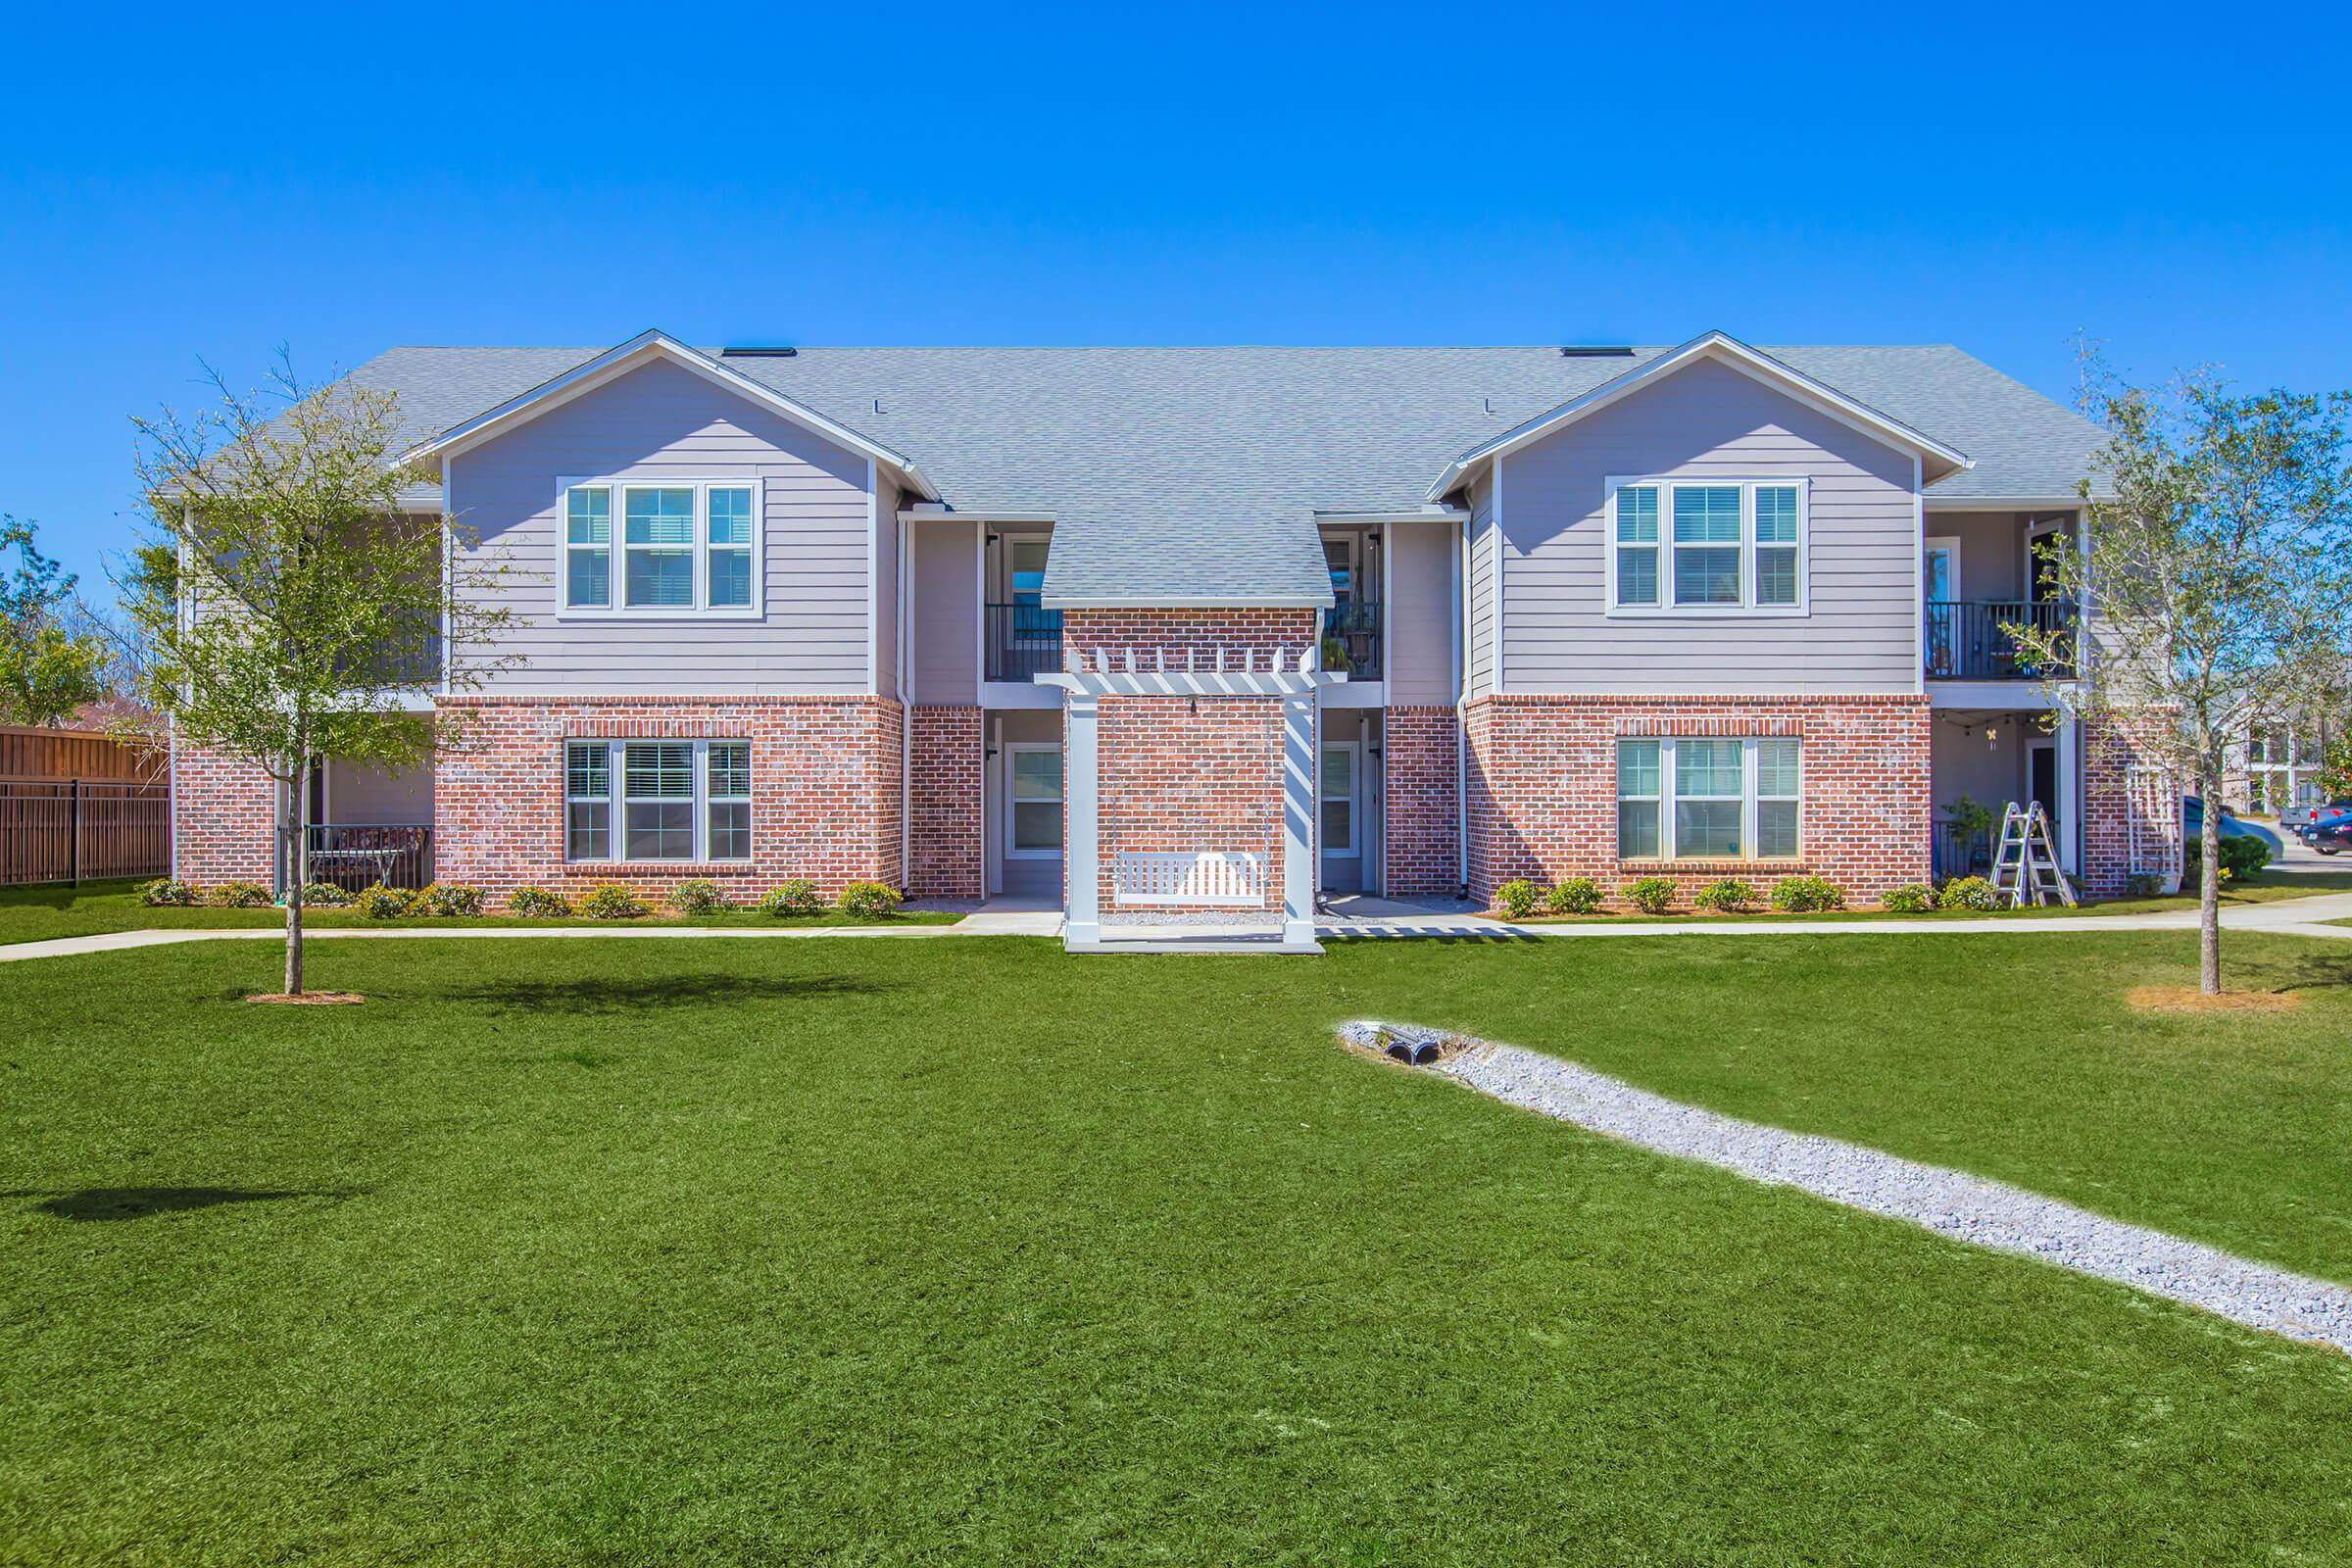 a large lawn in front of a house